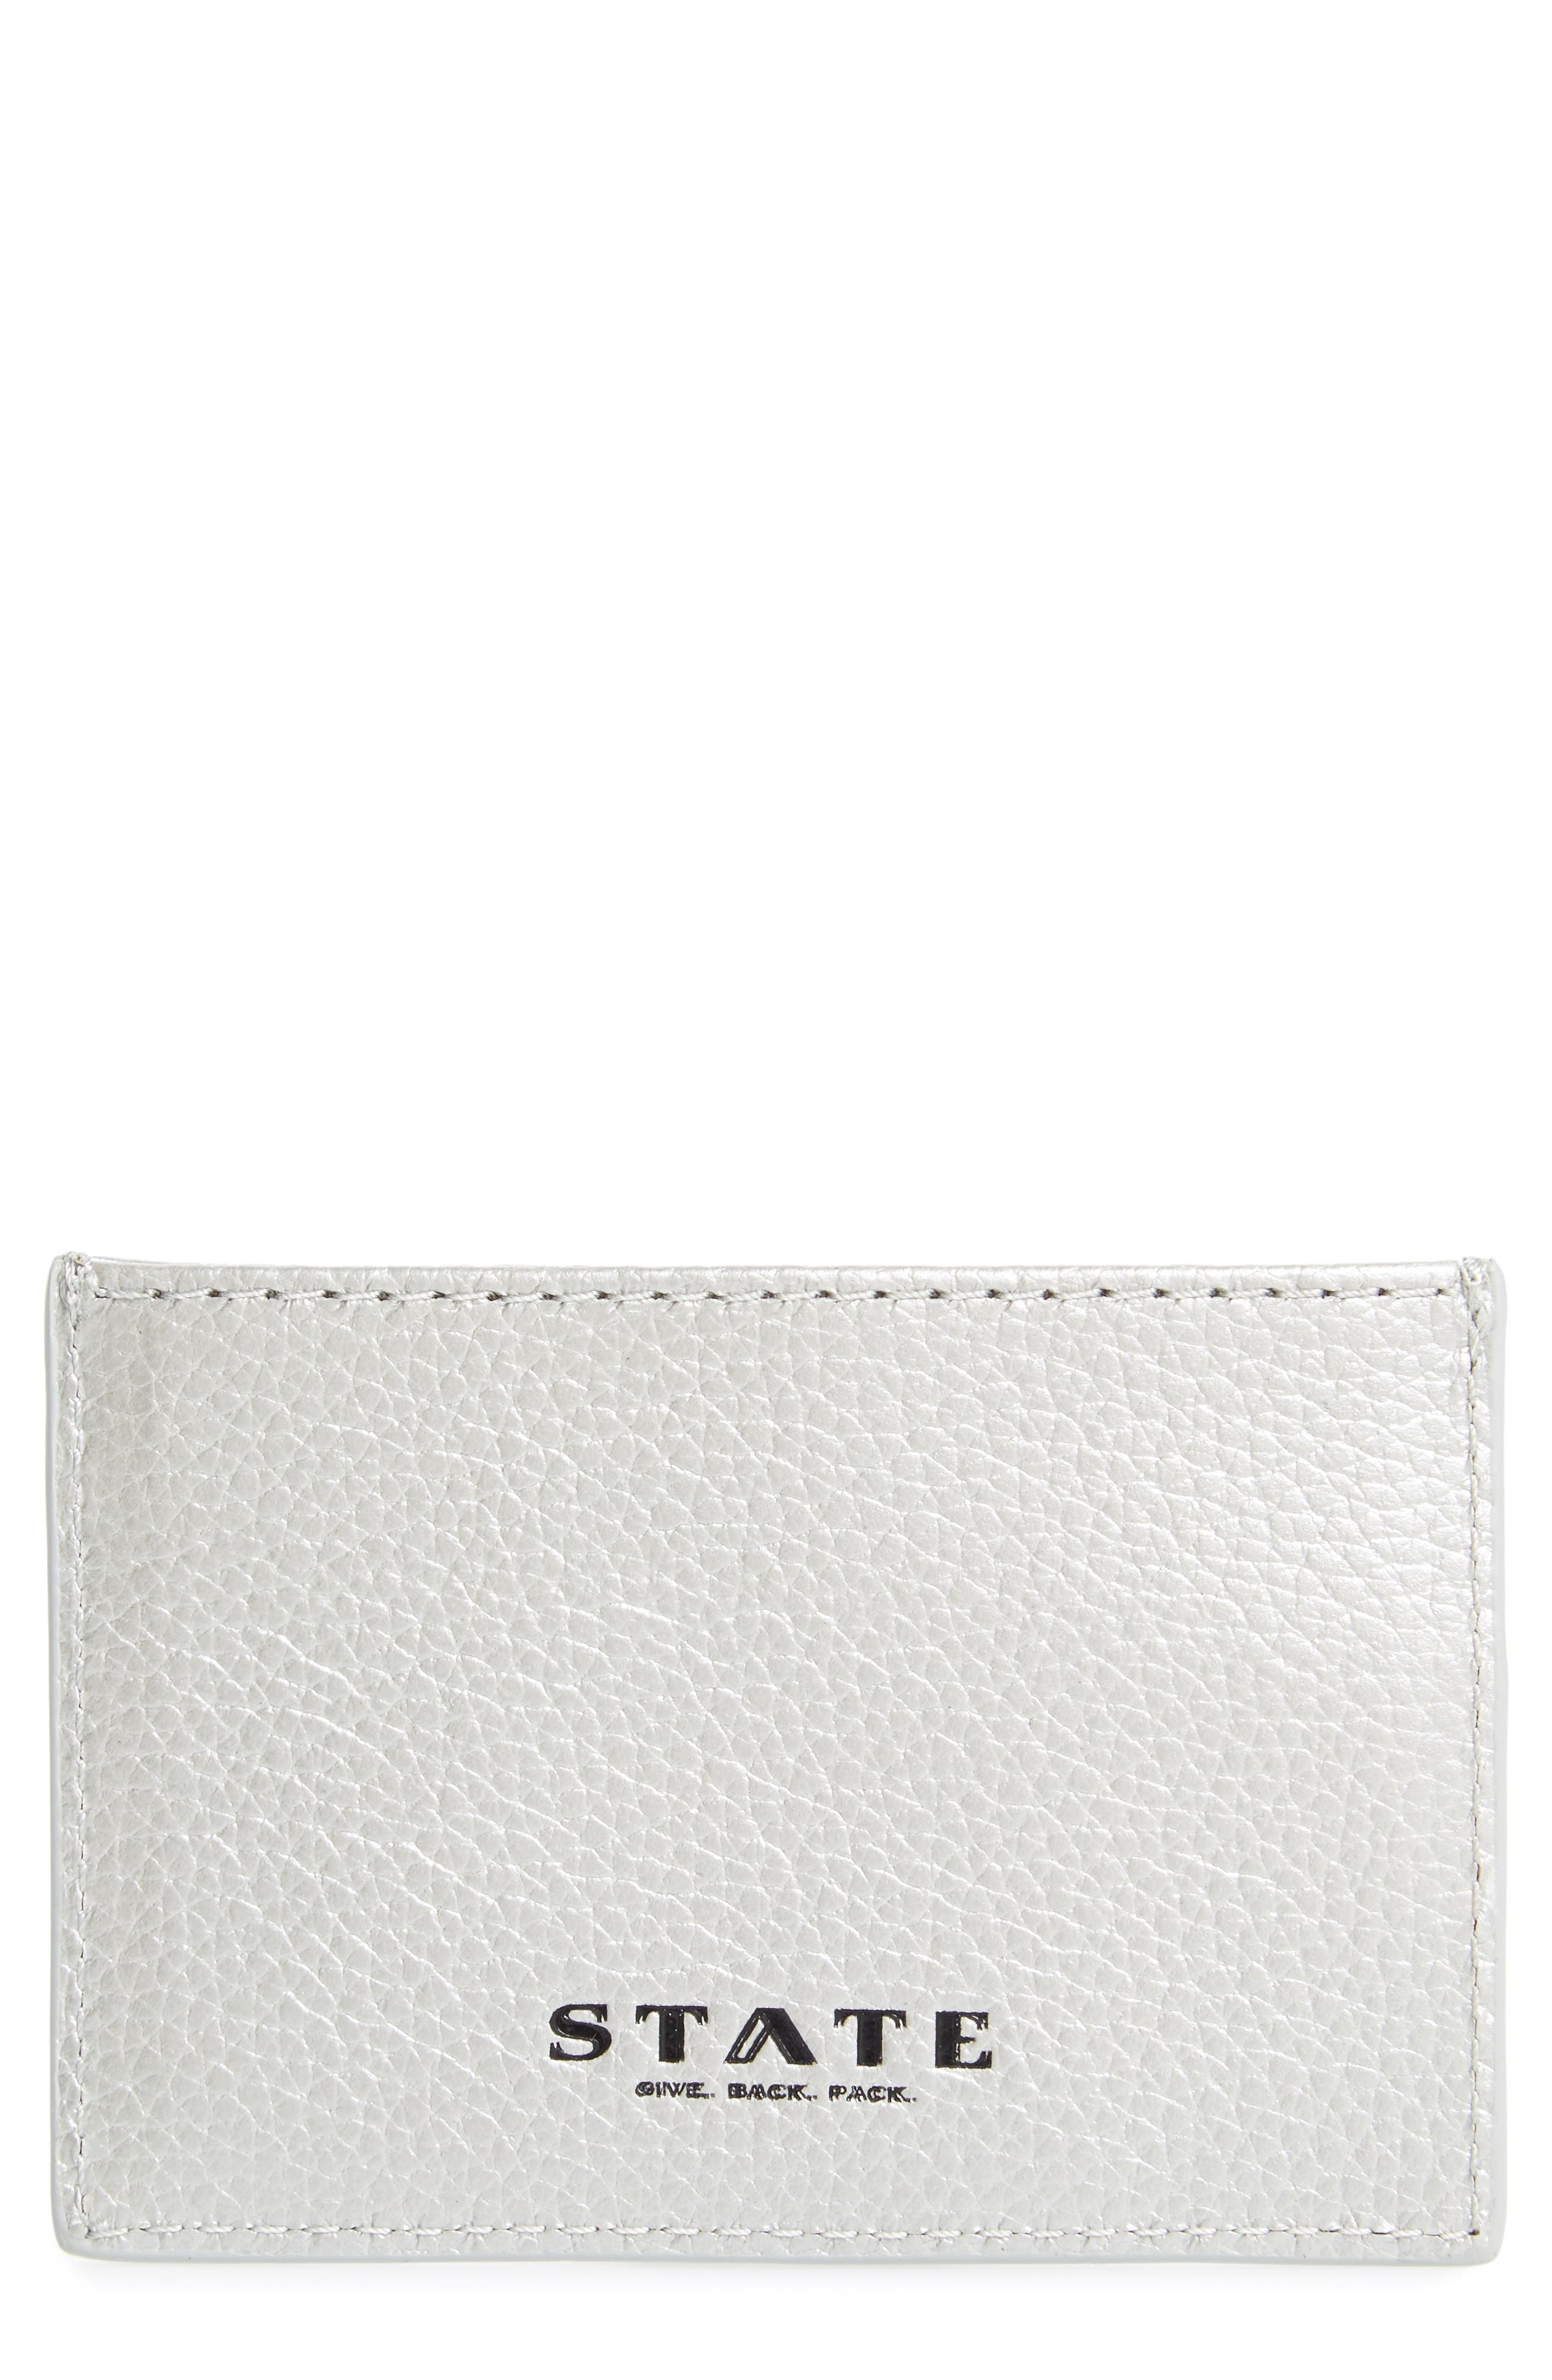 Greenwood Monaco Leather Card Case,                         Main,                         color, 040